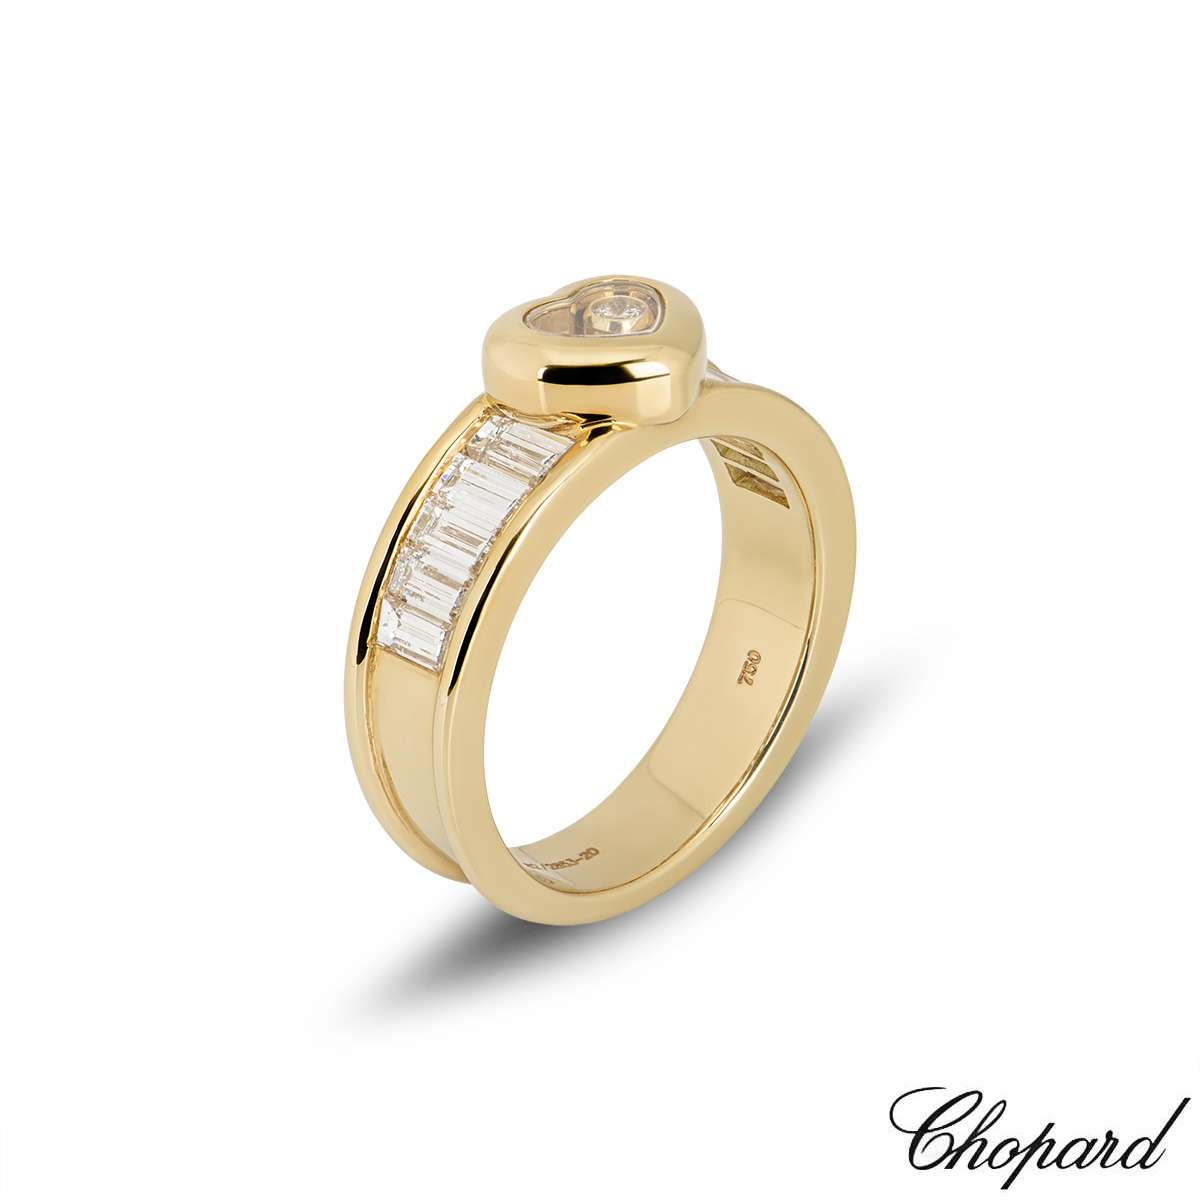 Chopard 18k Yellow Gold Happy Diamond Heart Ring 82/2853-20